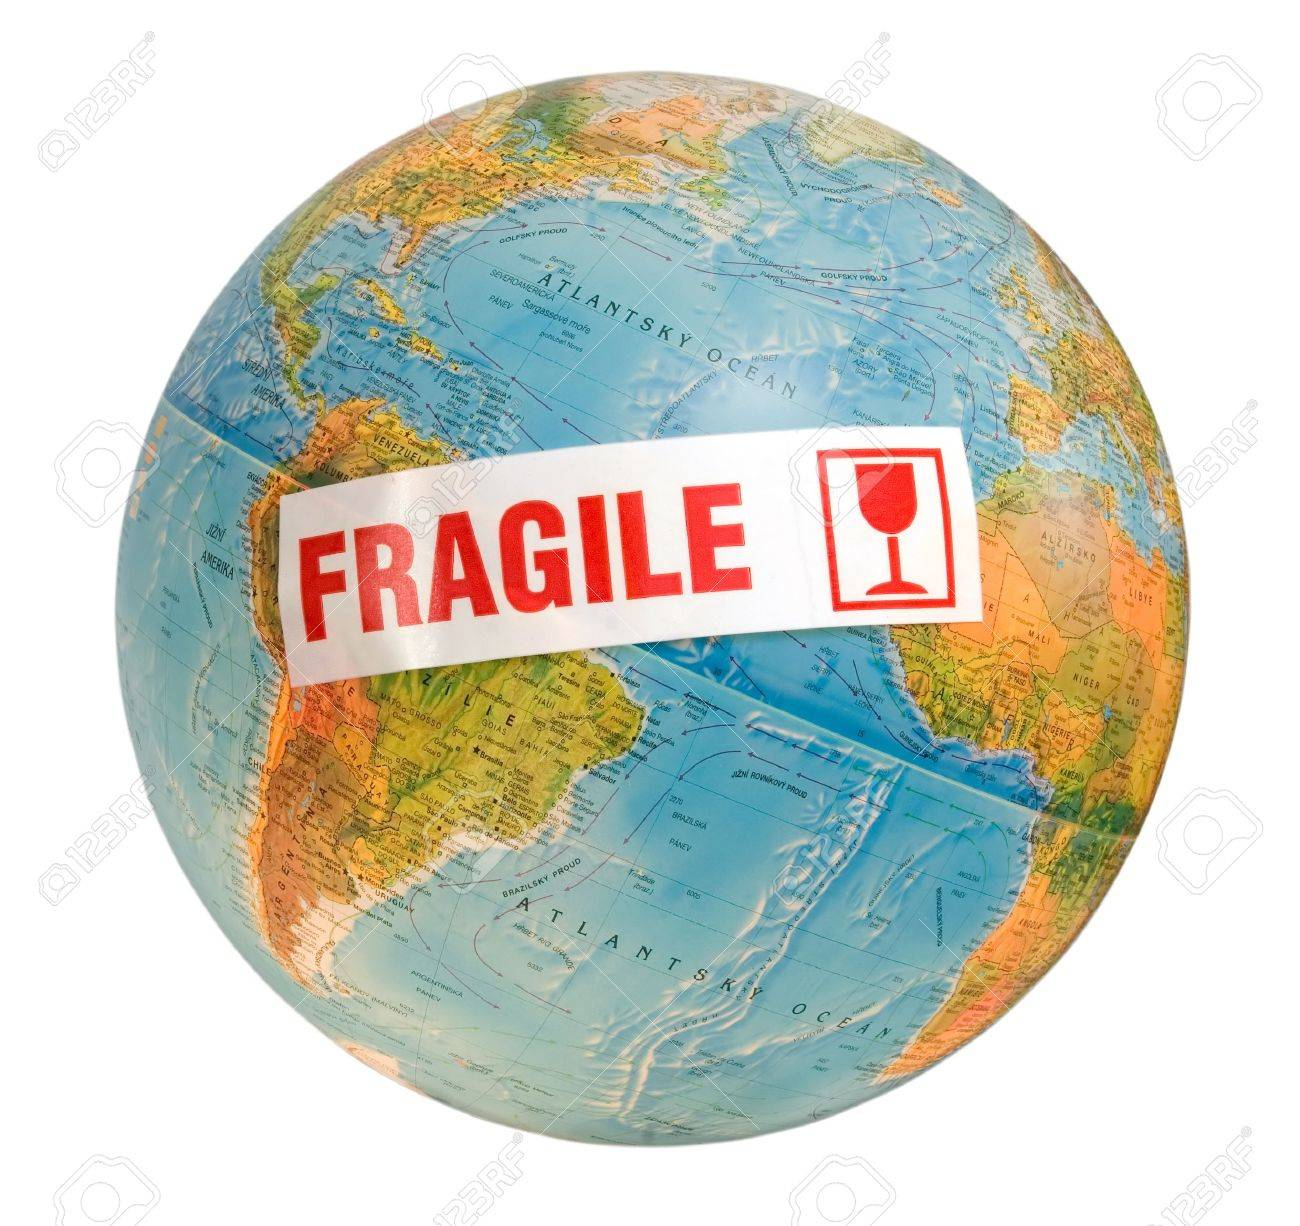 Fragile World Stock Photo, Picture And Royalty Free Image. Image ...